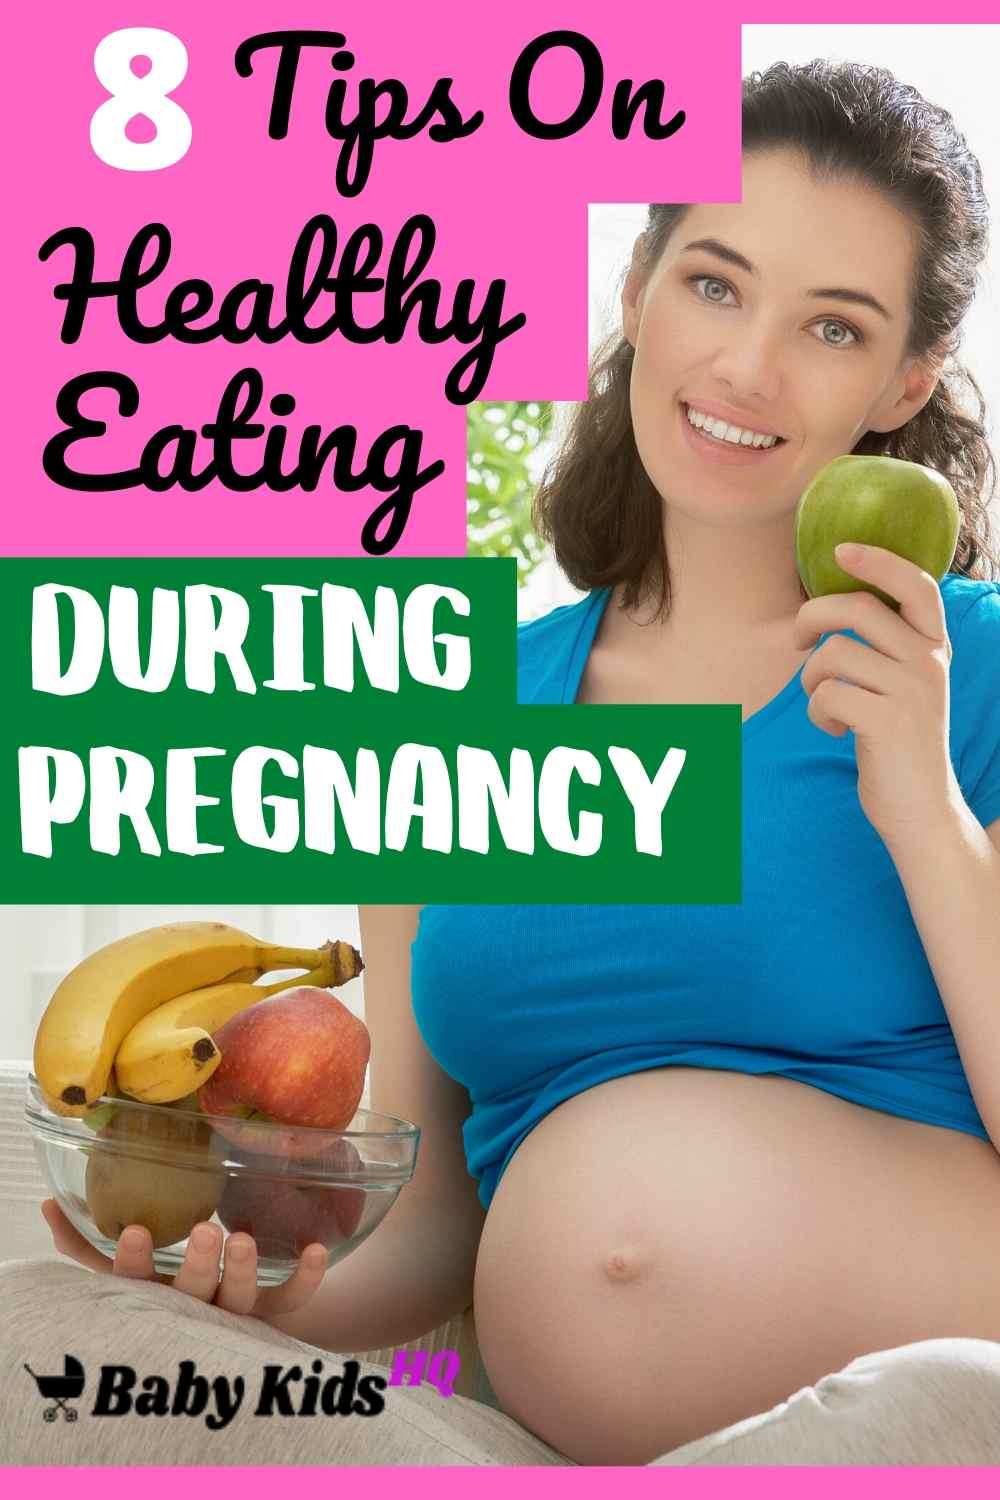 Once we find out we're pregnant, it's so important to create a pregnancy food guide. it's essential for the mother and baby's health to eat a healthy, well-balanced diet during pregnancy.